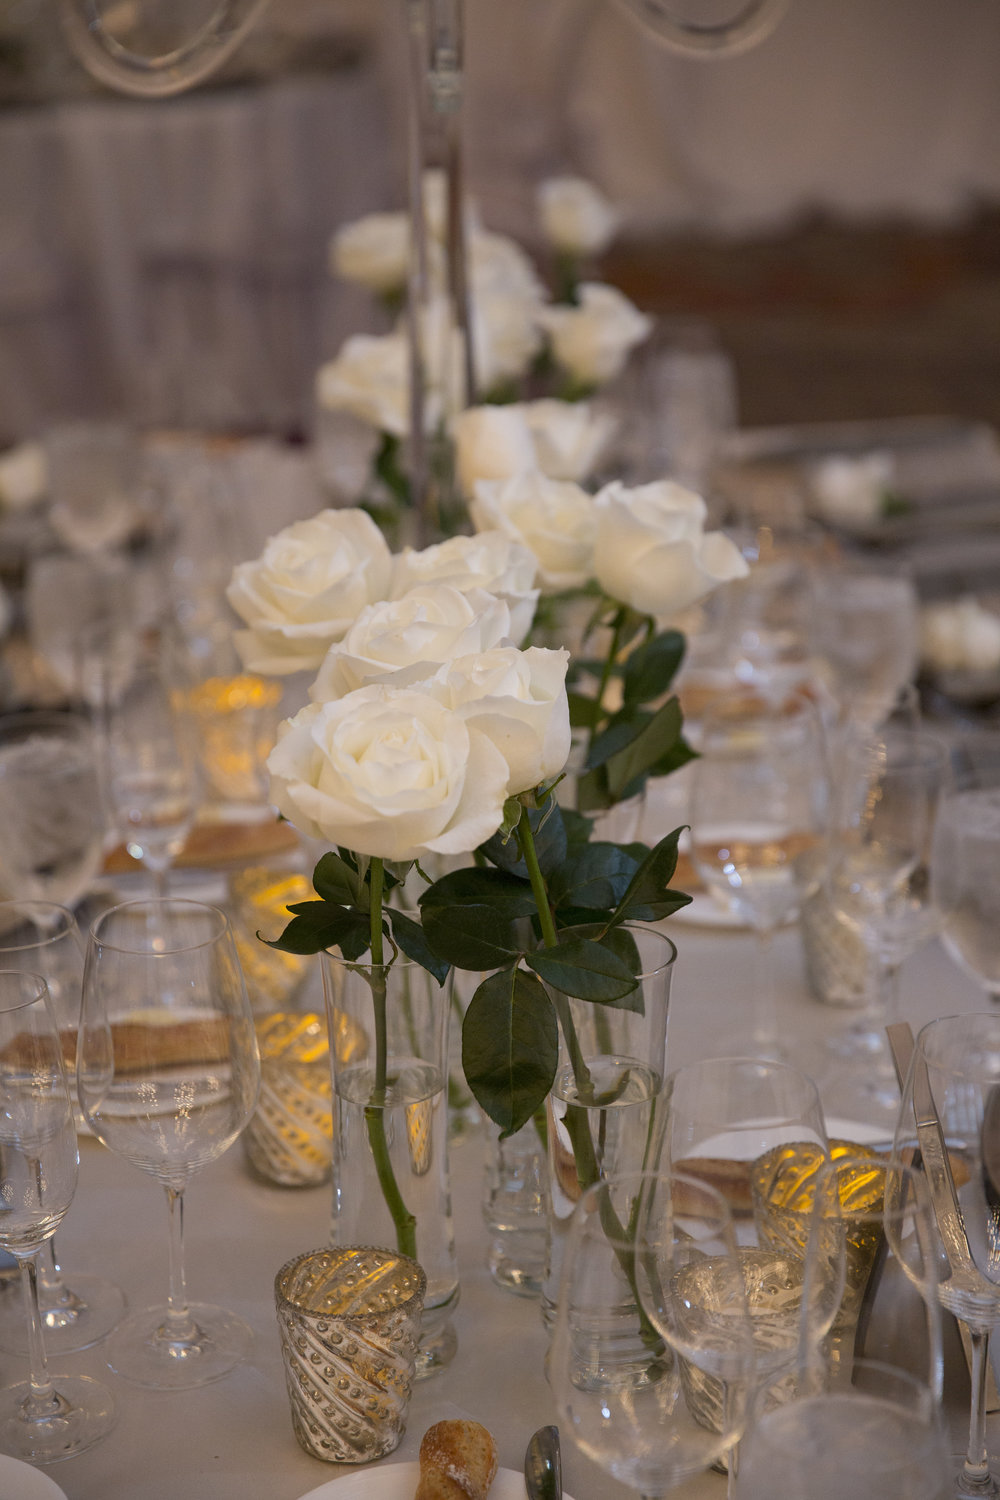 White roses in clear bud vases. WEDDING PLANNING & EVENT DESIGN •  Andrea Eppolito Events , PHOTOGRAPHY •  AltF Photography ,  FLORAL AND DECOR DESIGN & PRODUCTION • Destinations by Design , CATERING •  Mandarin Oriental Las Vegas , COCKTAILS •  The Grand Bevy , WEDDING GOWN •  Galia Lahav ,  SHOES •  Jimmy Choo , ACRYLIC MENUS & SEATING CHART•  She Paperie